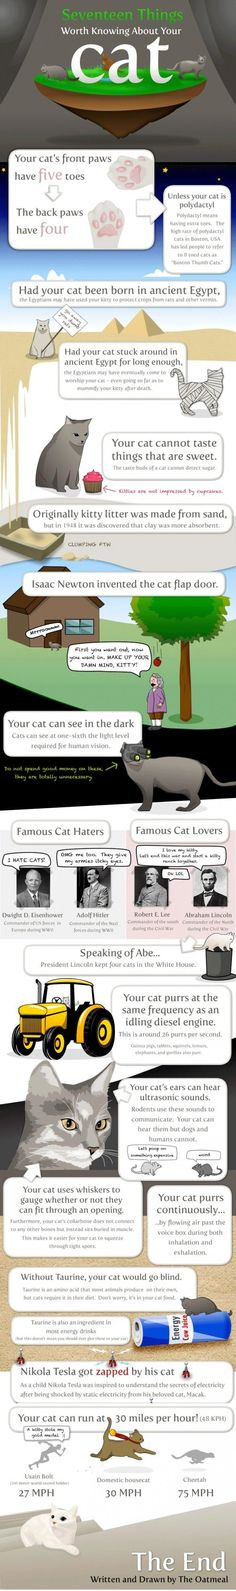 Posted in Cat Behavior 101 , Cats , Secrets of Cats #facts - More info about cat at http://Catsincare.com!